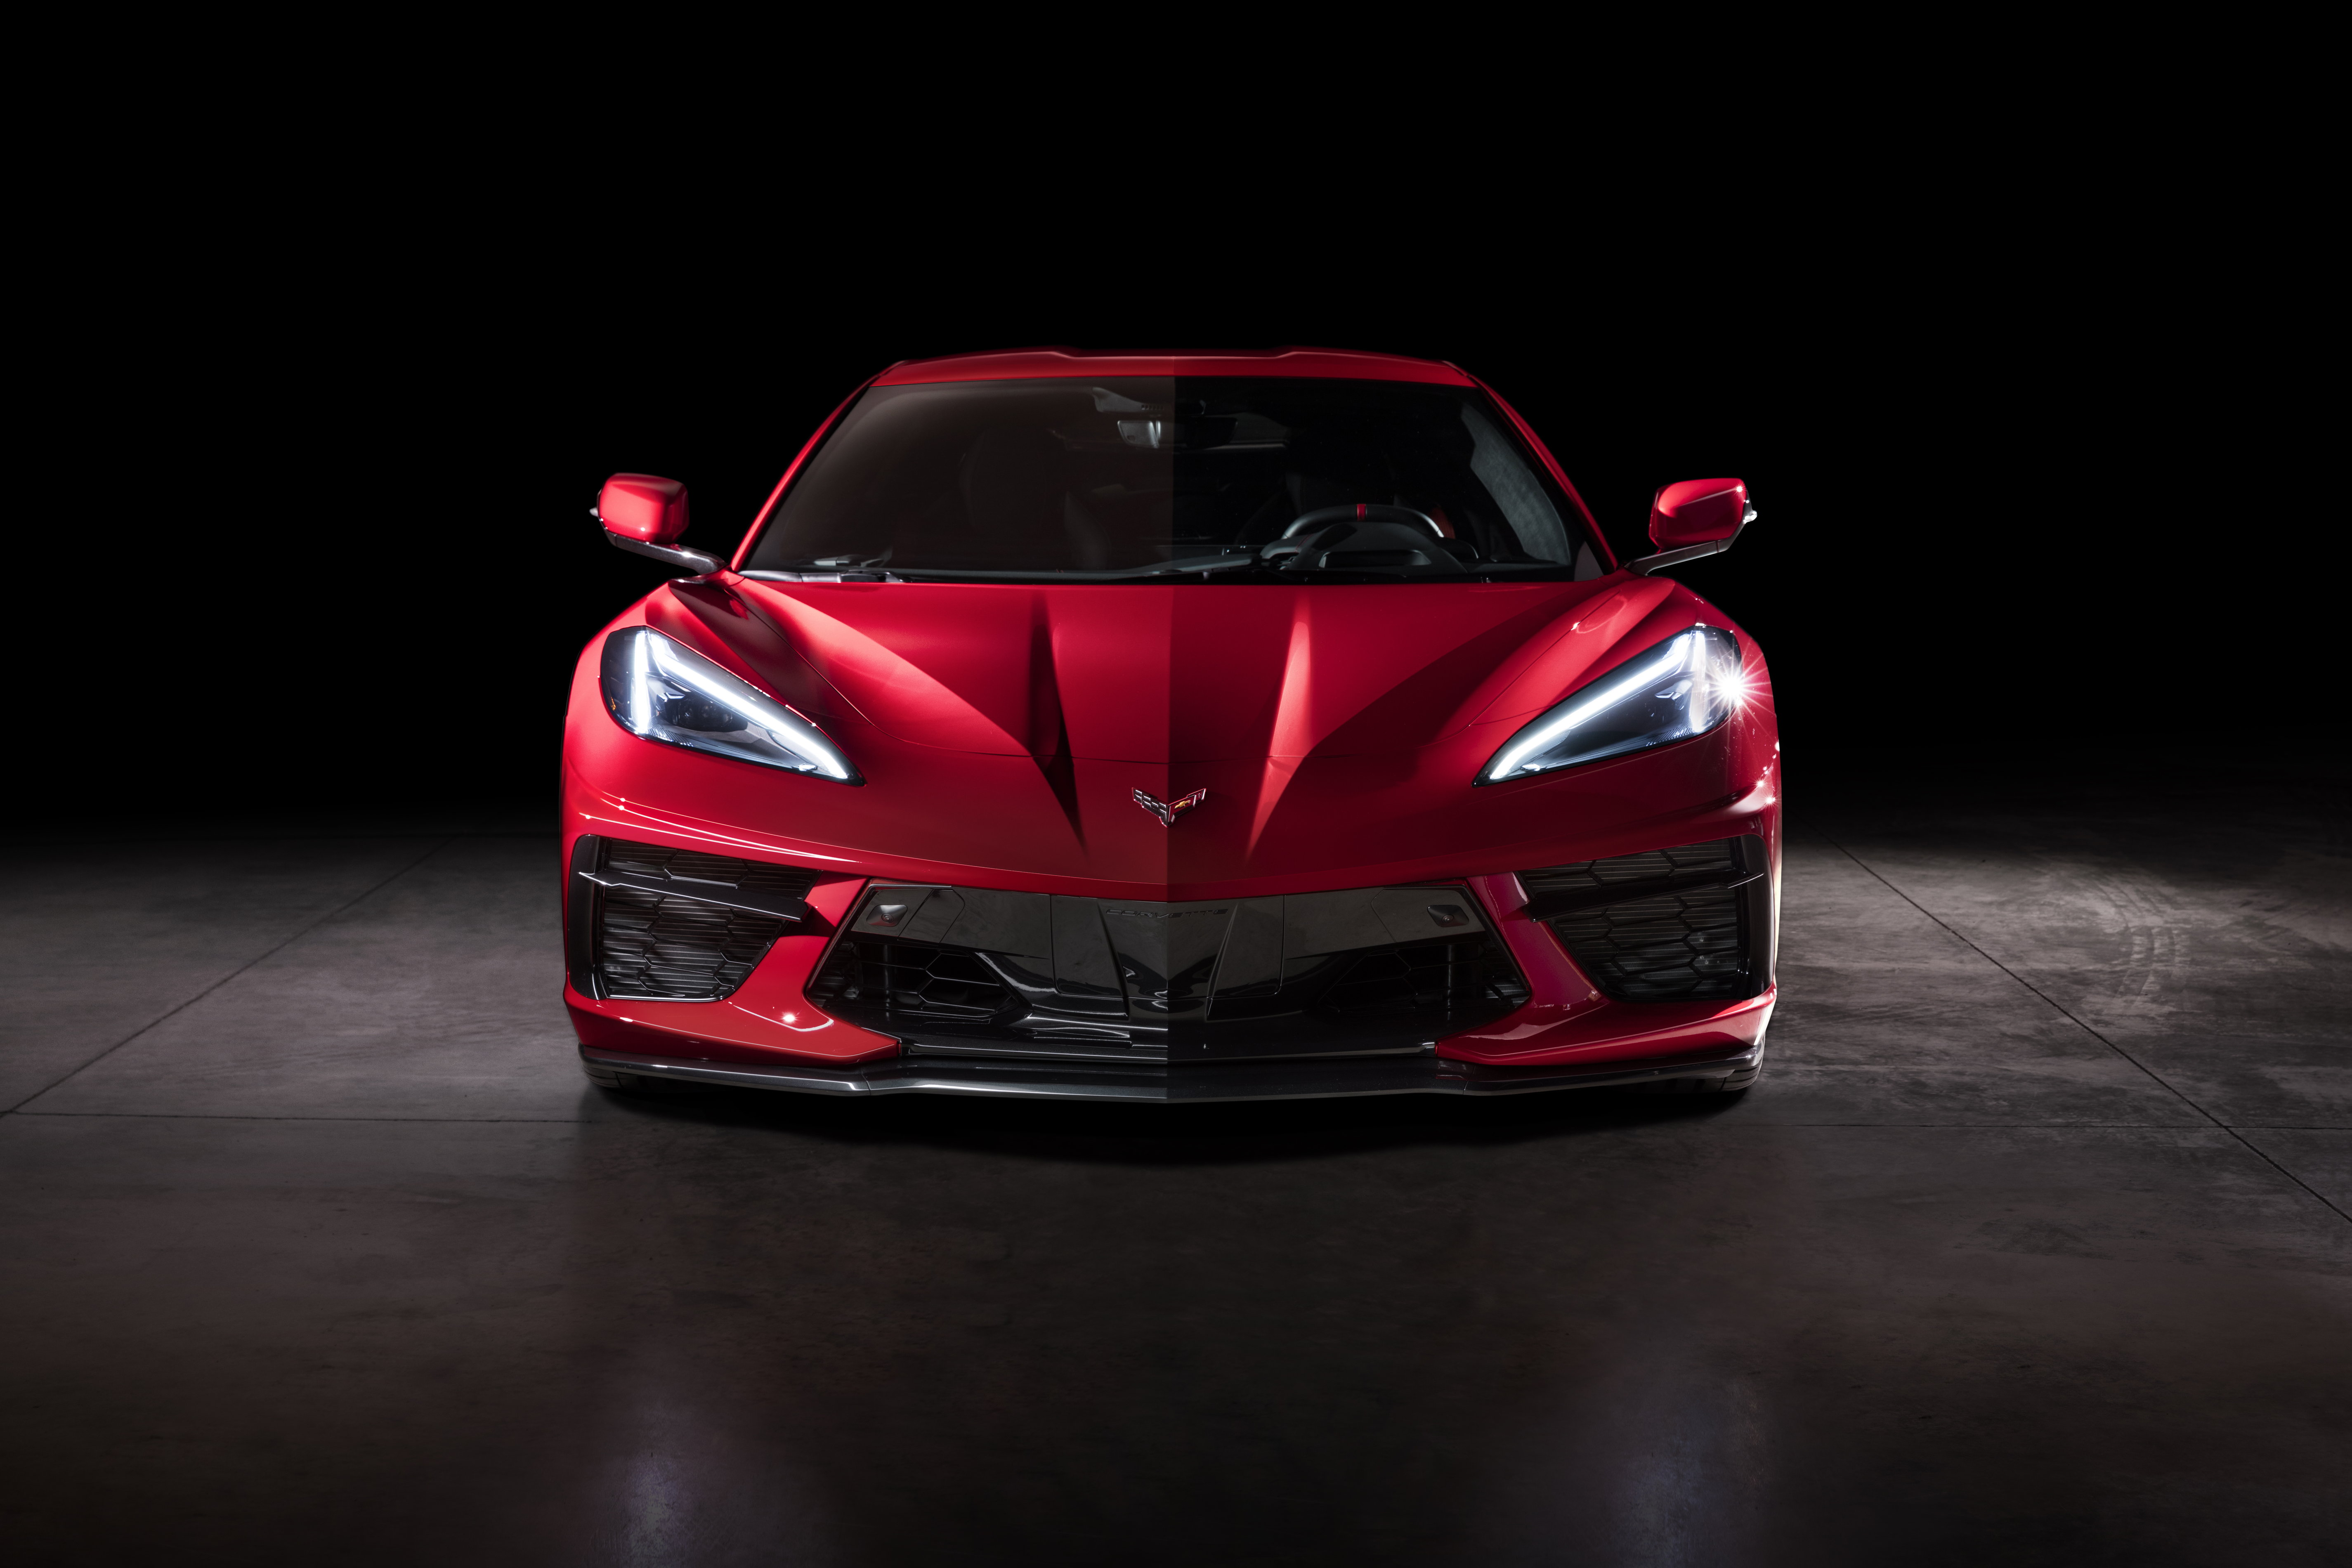 2020 Chevrolet Corvette Stingray 041 1